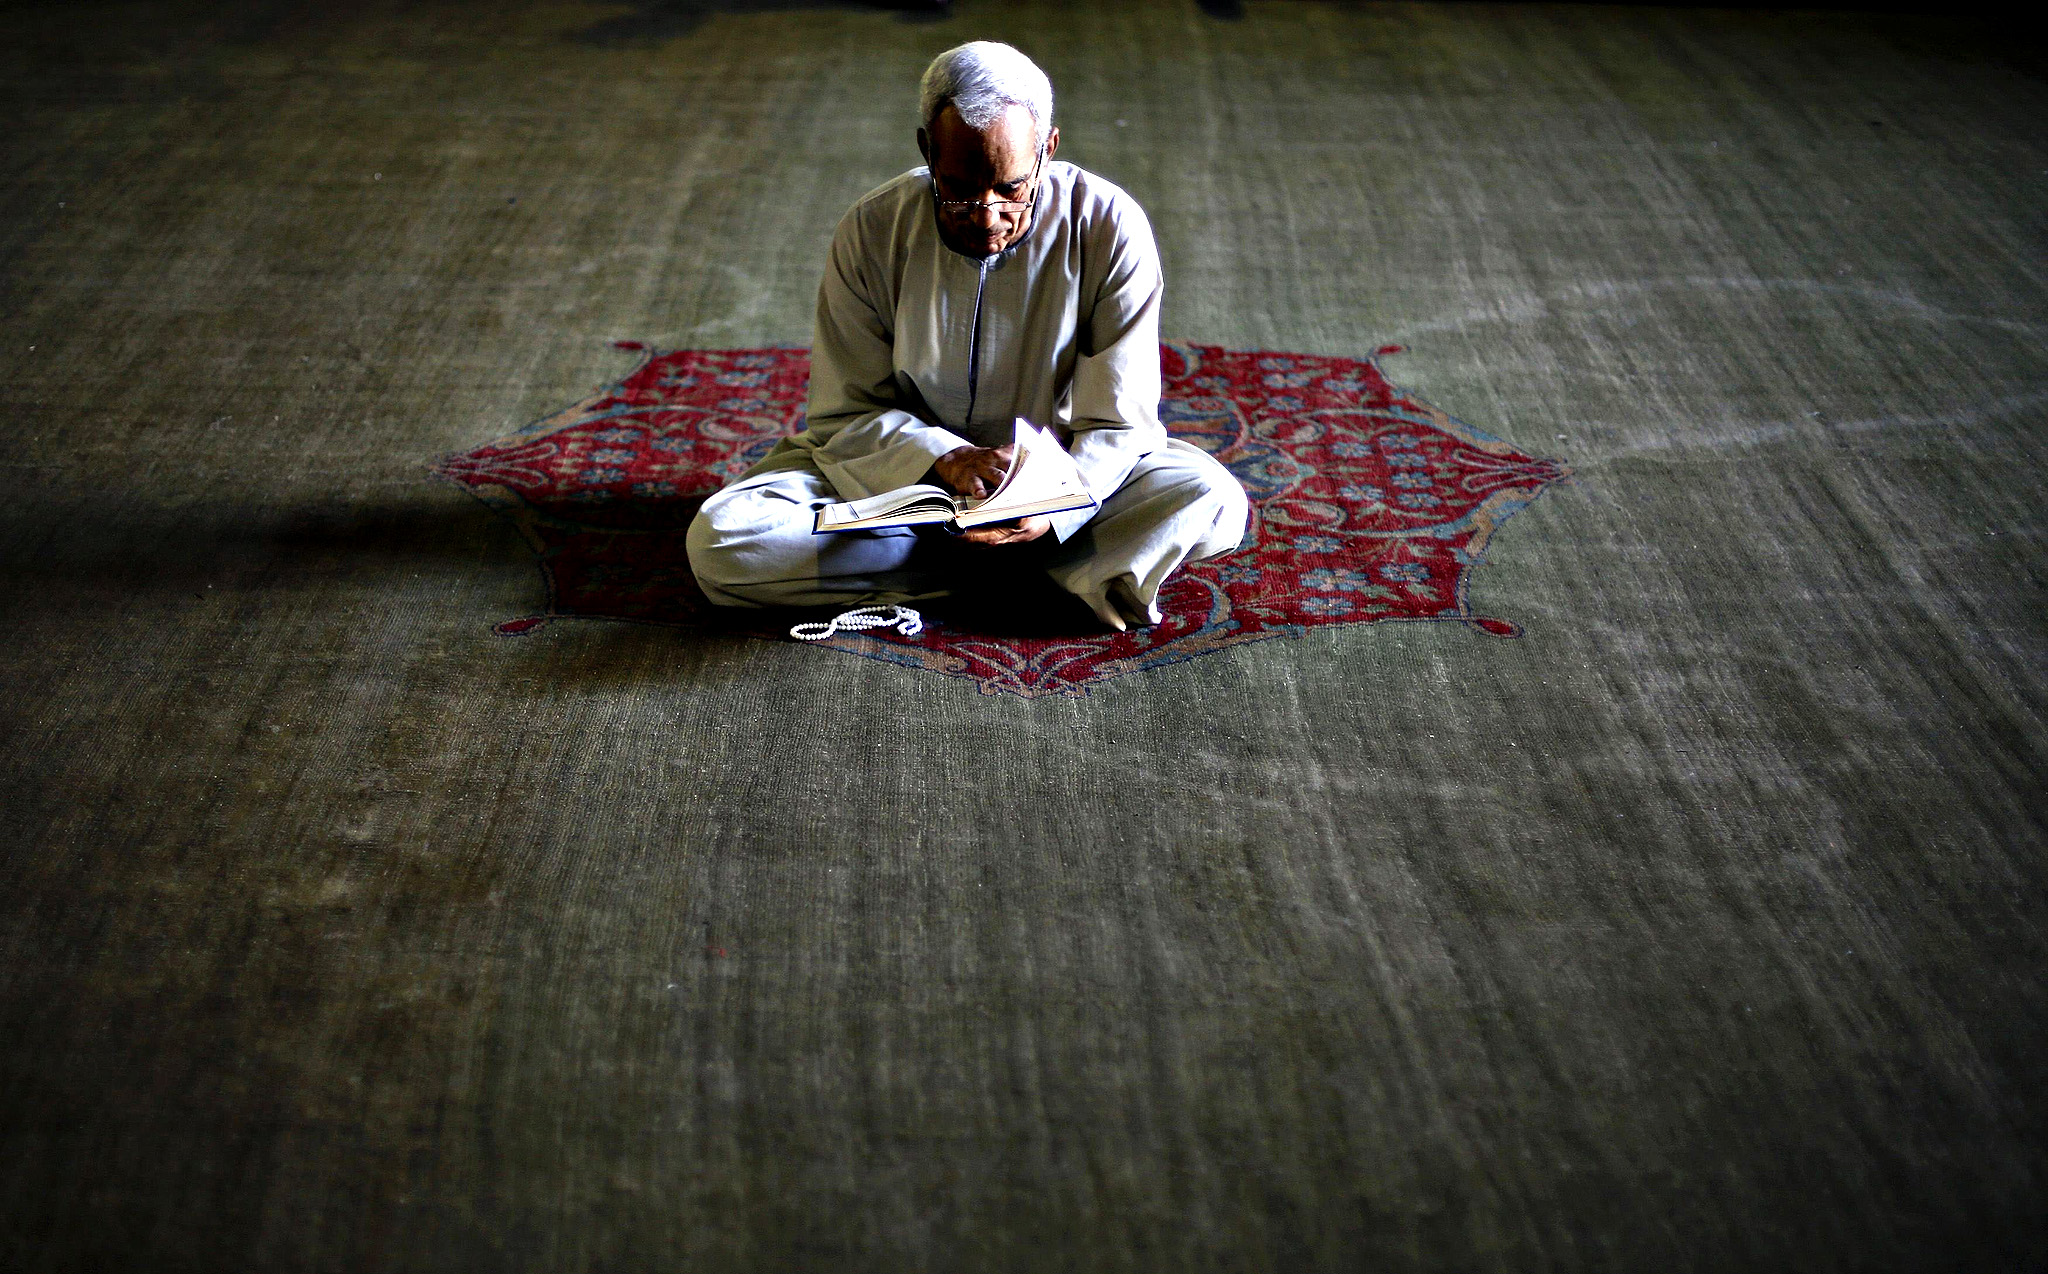 A Muslim man reads the Koran during the holy month of Ramadan inside Al-Refaie mosque in the old Islamic area of Cairo July 16, 2014.